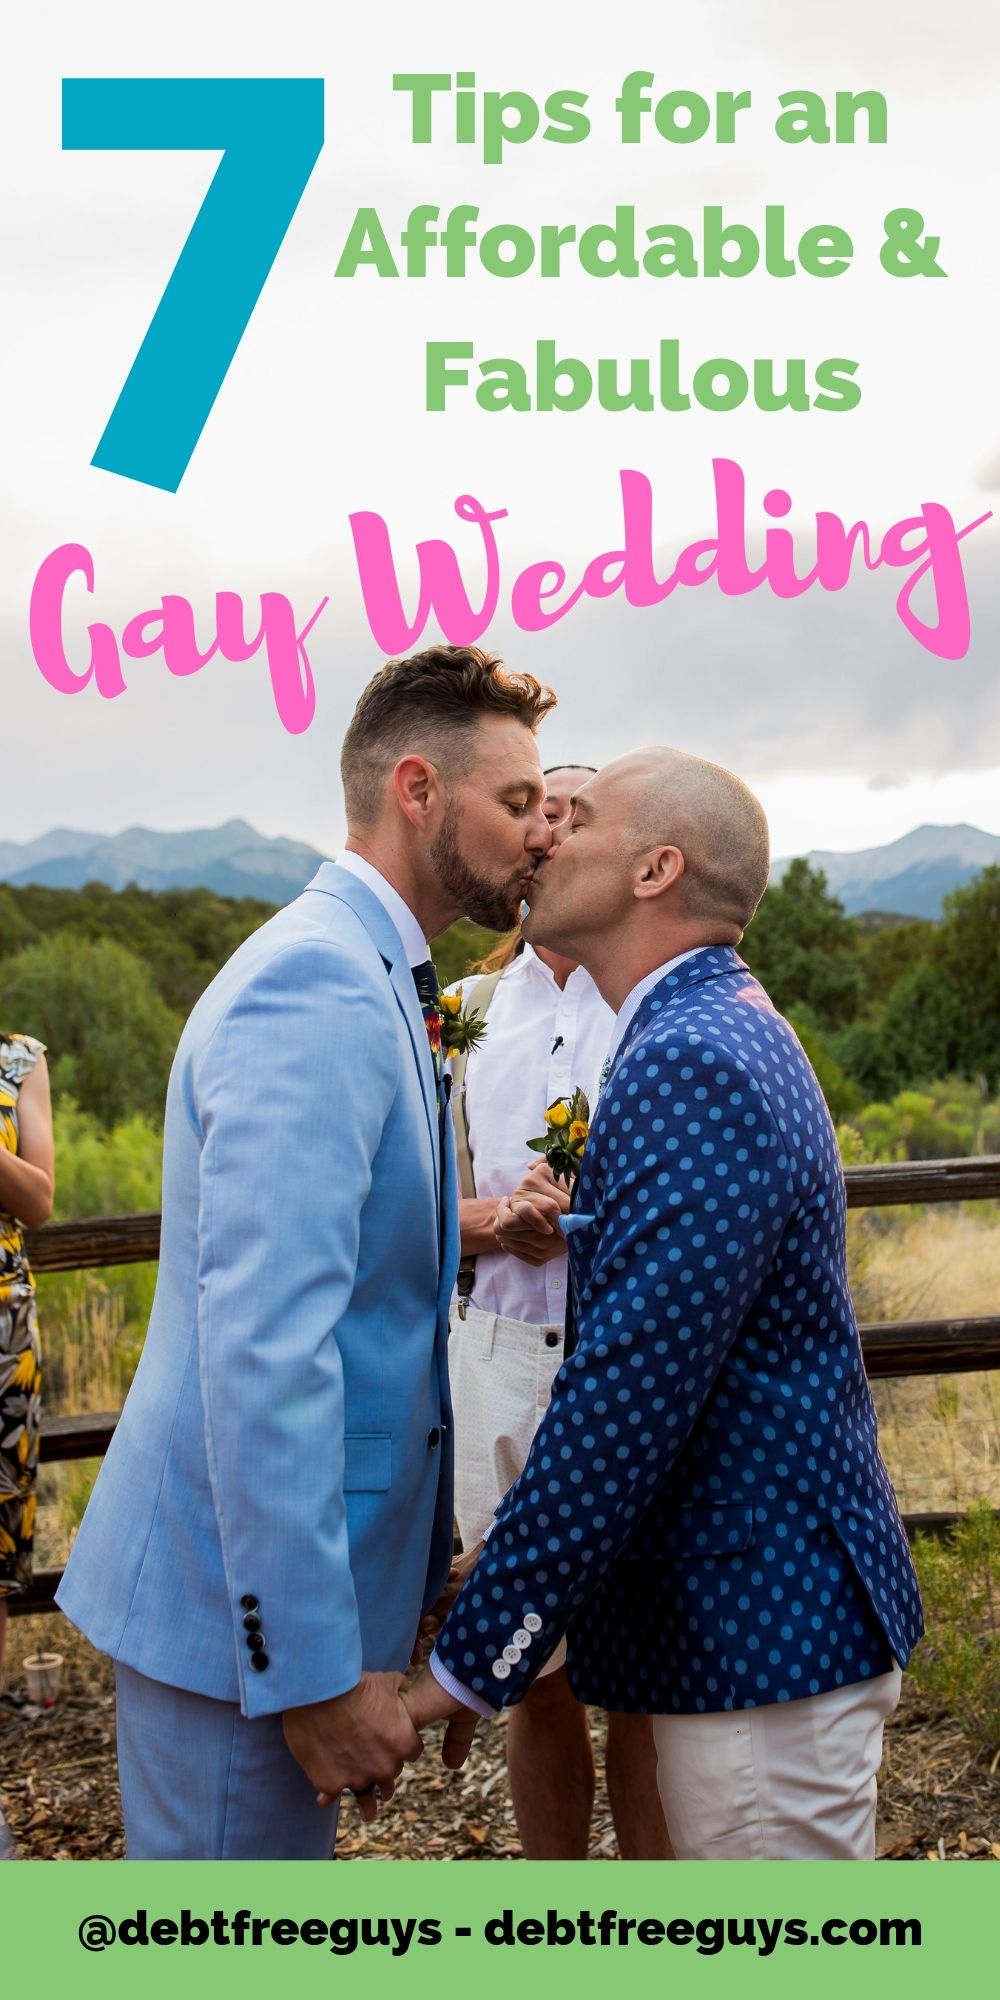 8f5e82bd1751 Weddings are expensive. Gay weddings can be even more expensive with all the